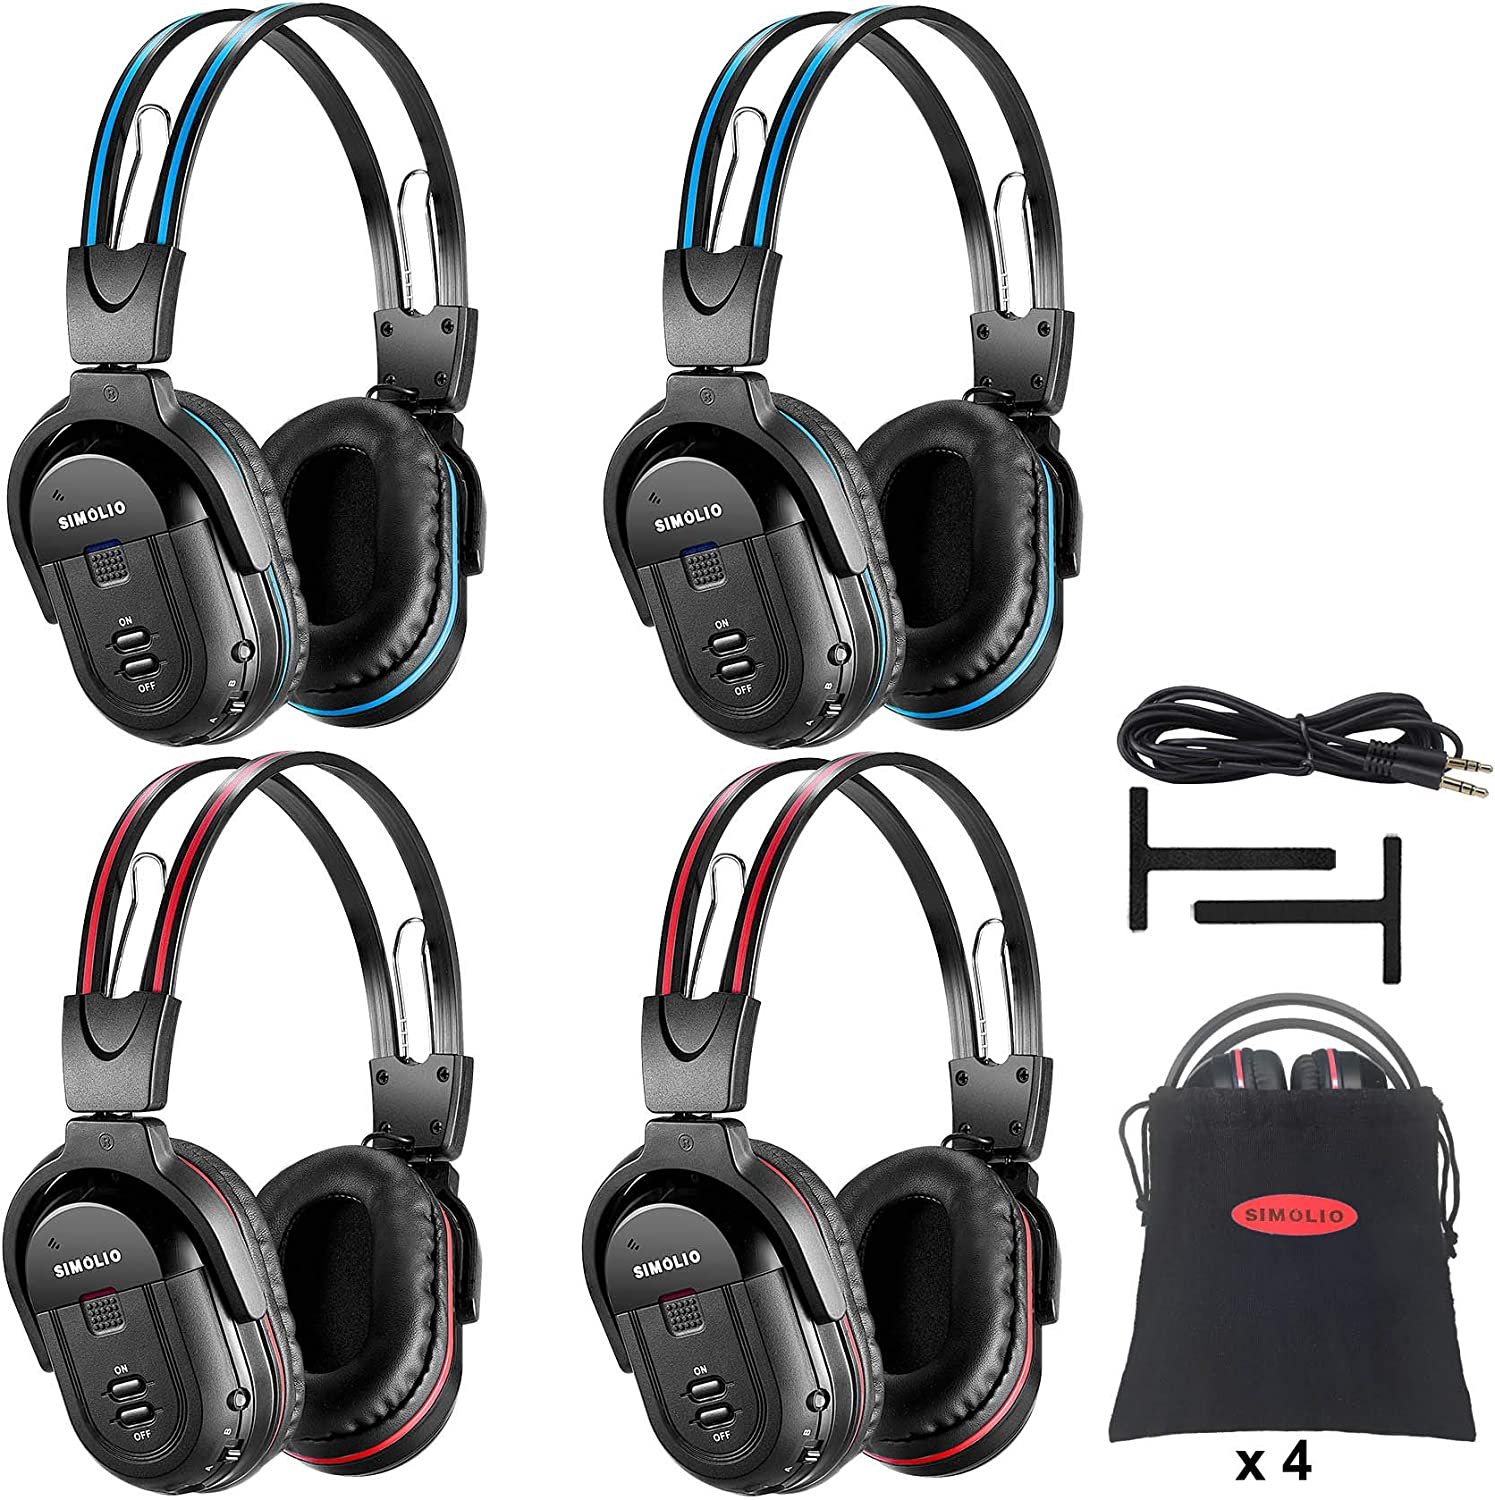 SIMOLIO 4 Pack of San Francisco Mall DVD All items in the store Headphones Car Wireless in Kids